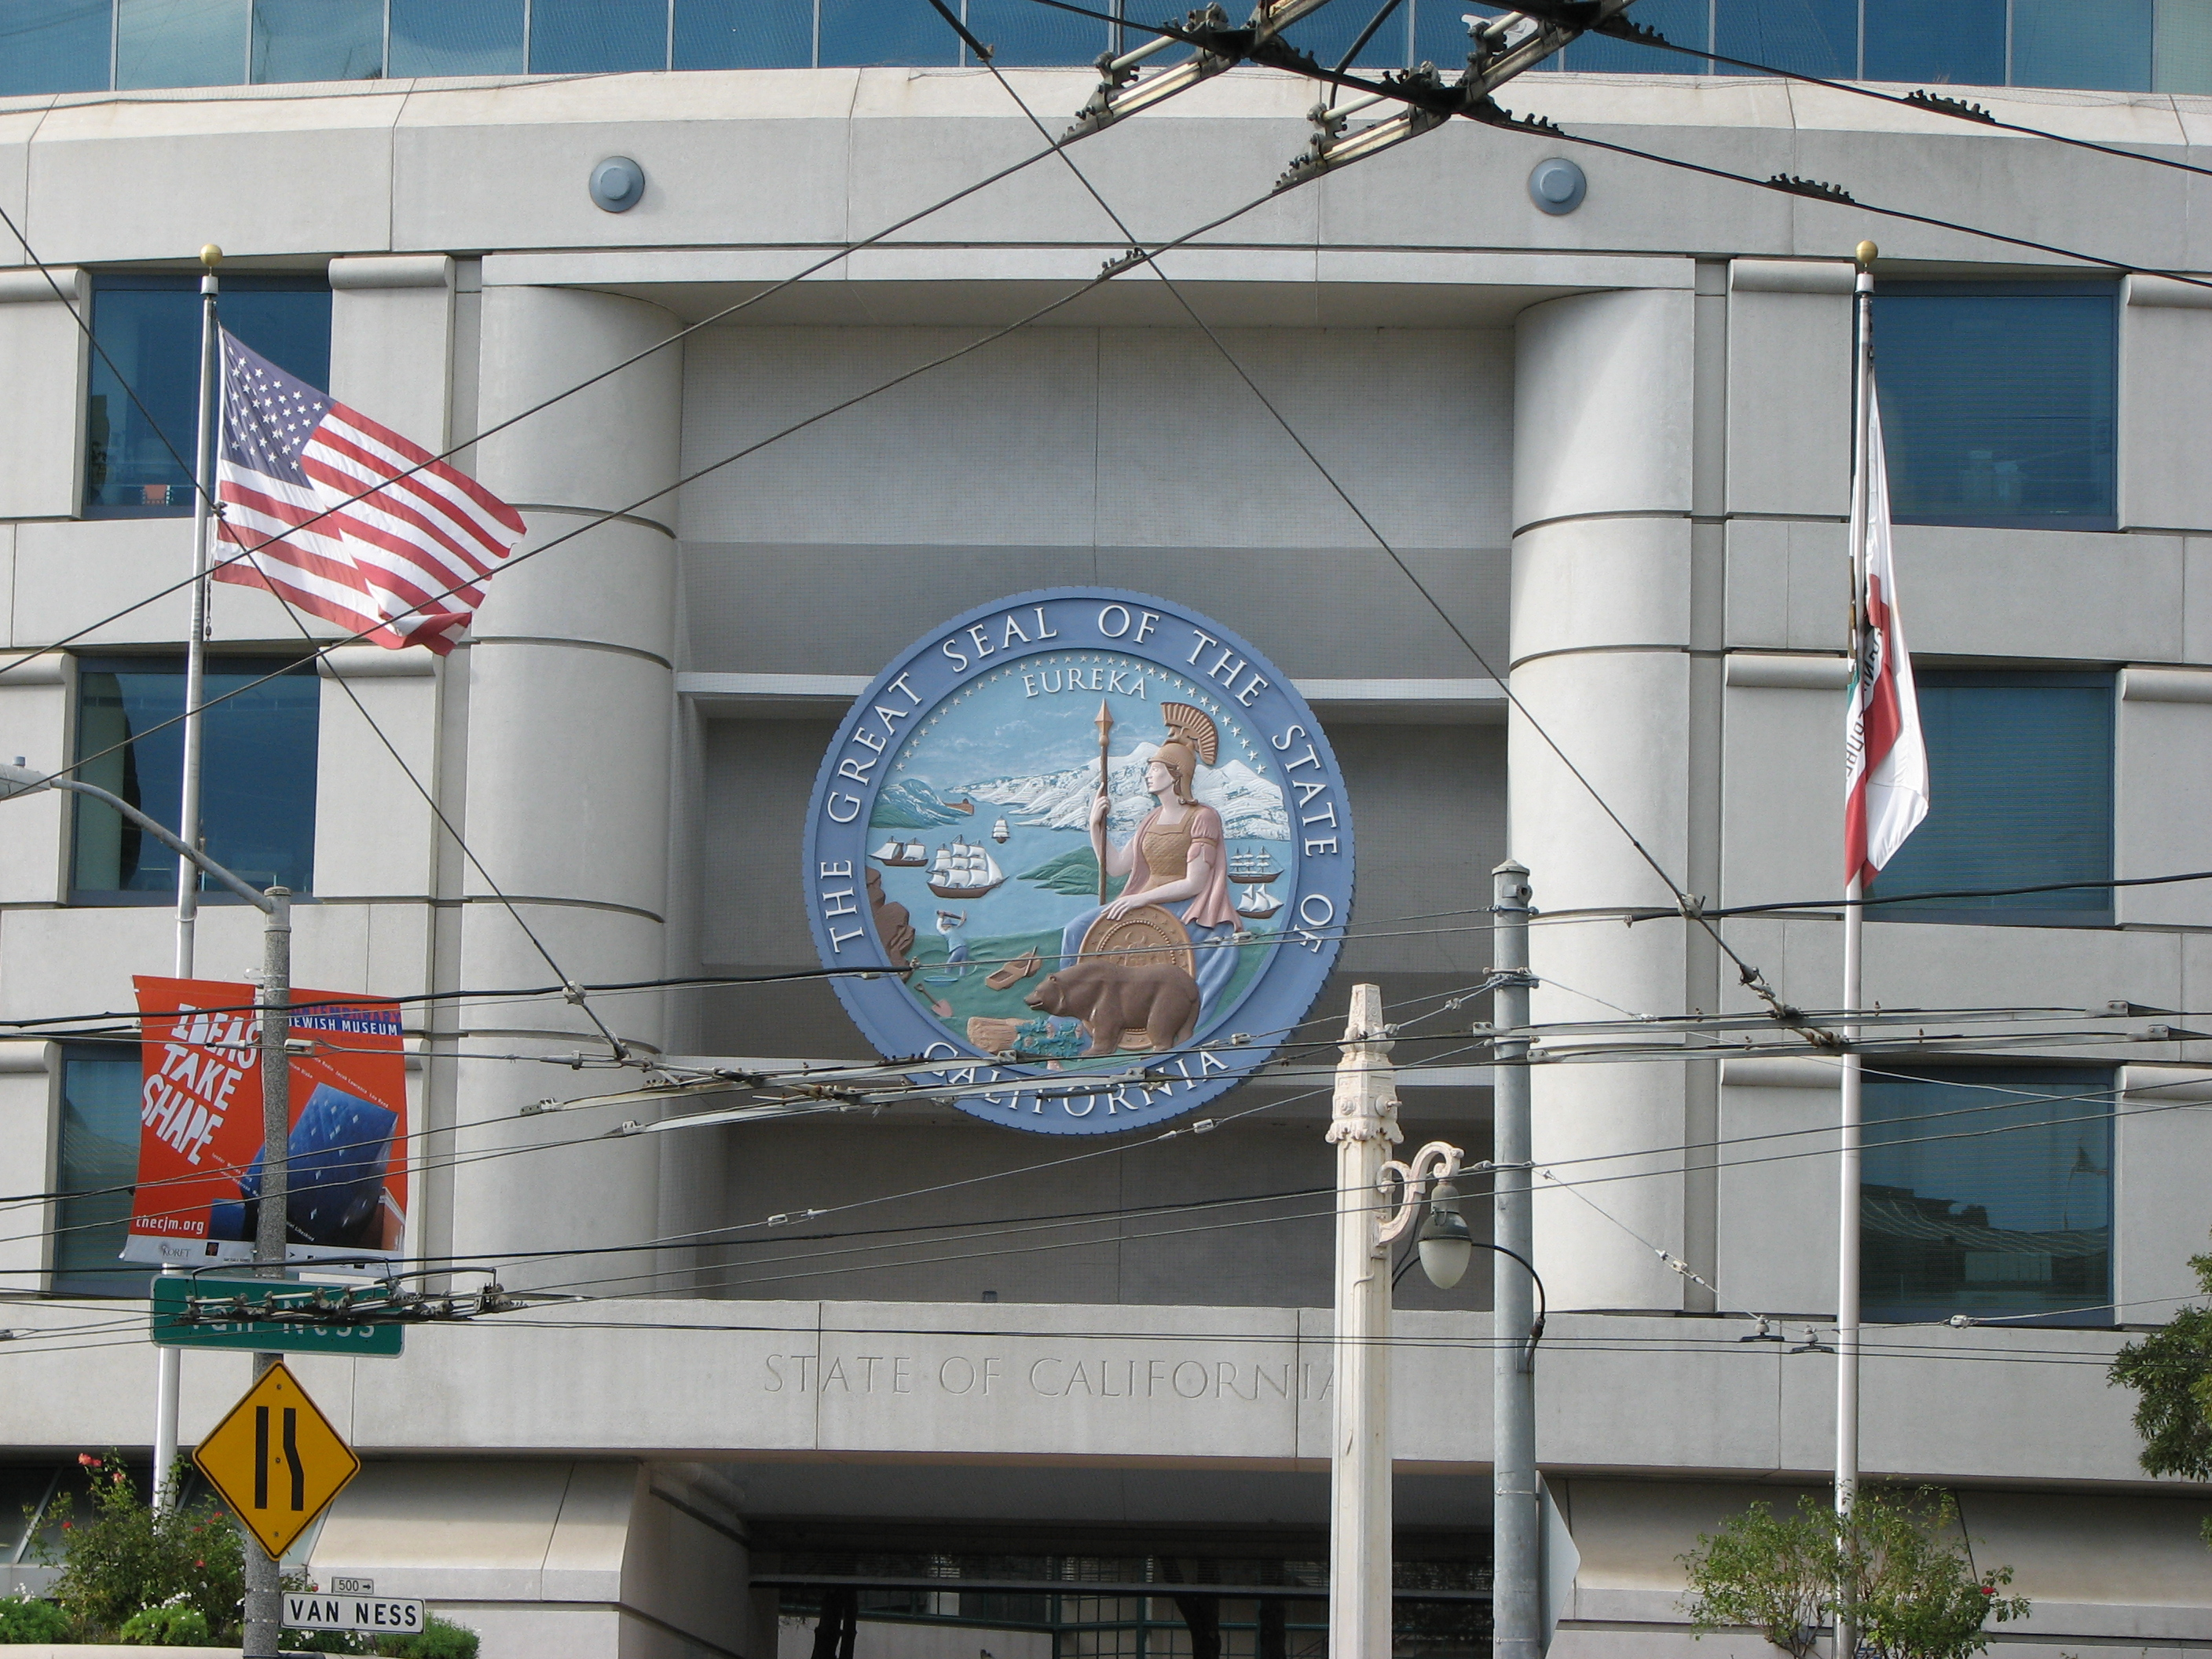 California Public Utilities Commission building in San Francisco.